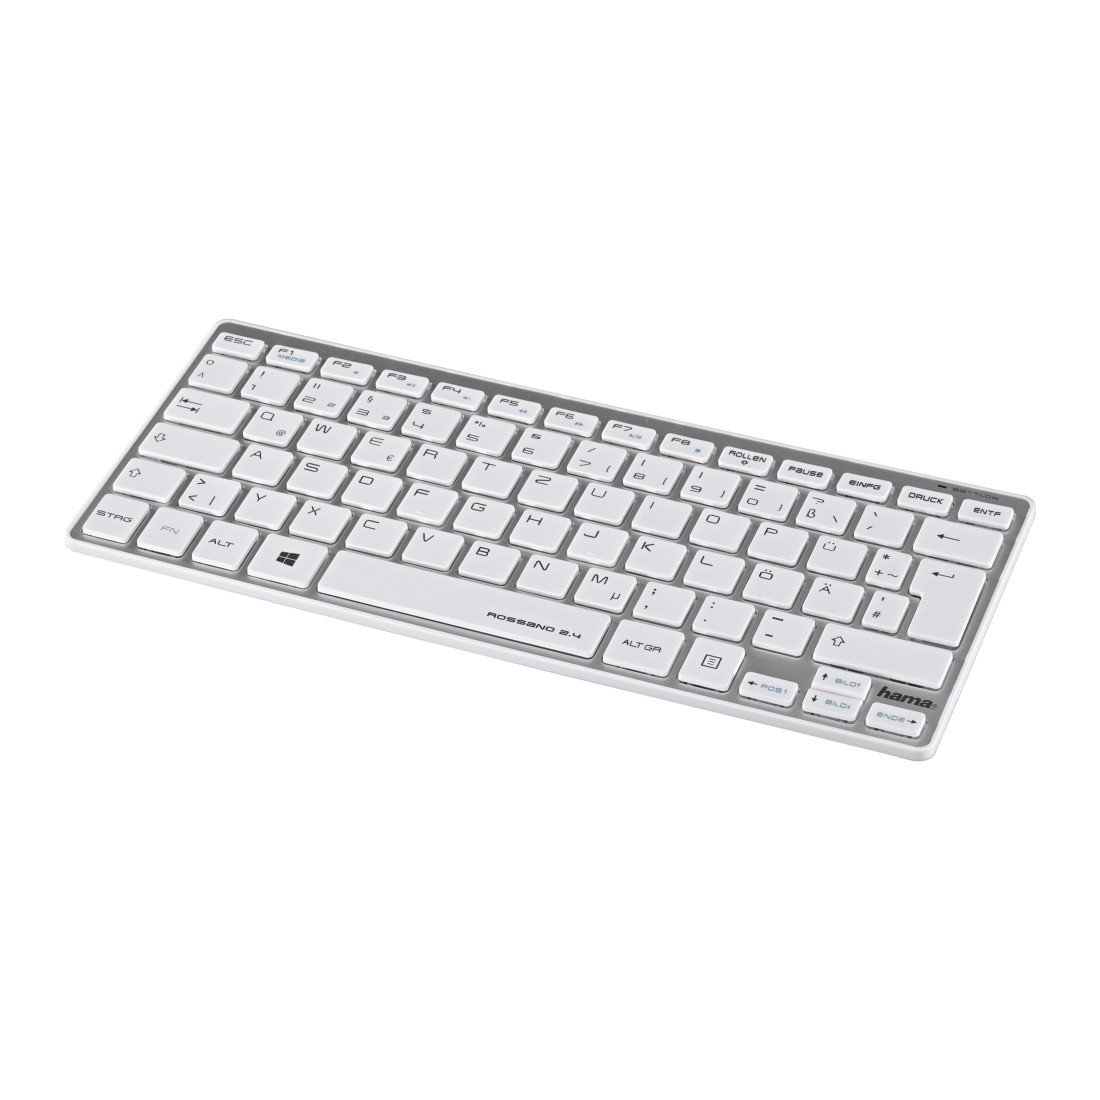 HAMA OPTICAL DESKTOP HOME MOUSEKEYBOARD DRIVERS FOR PC